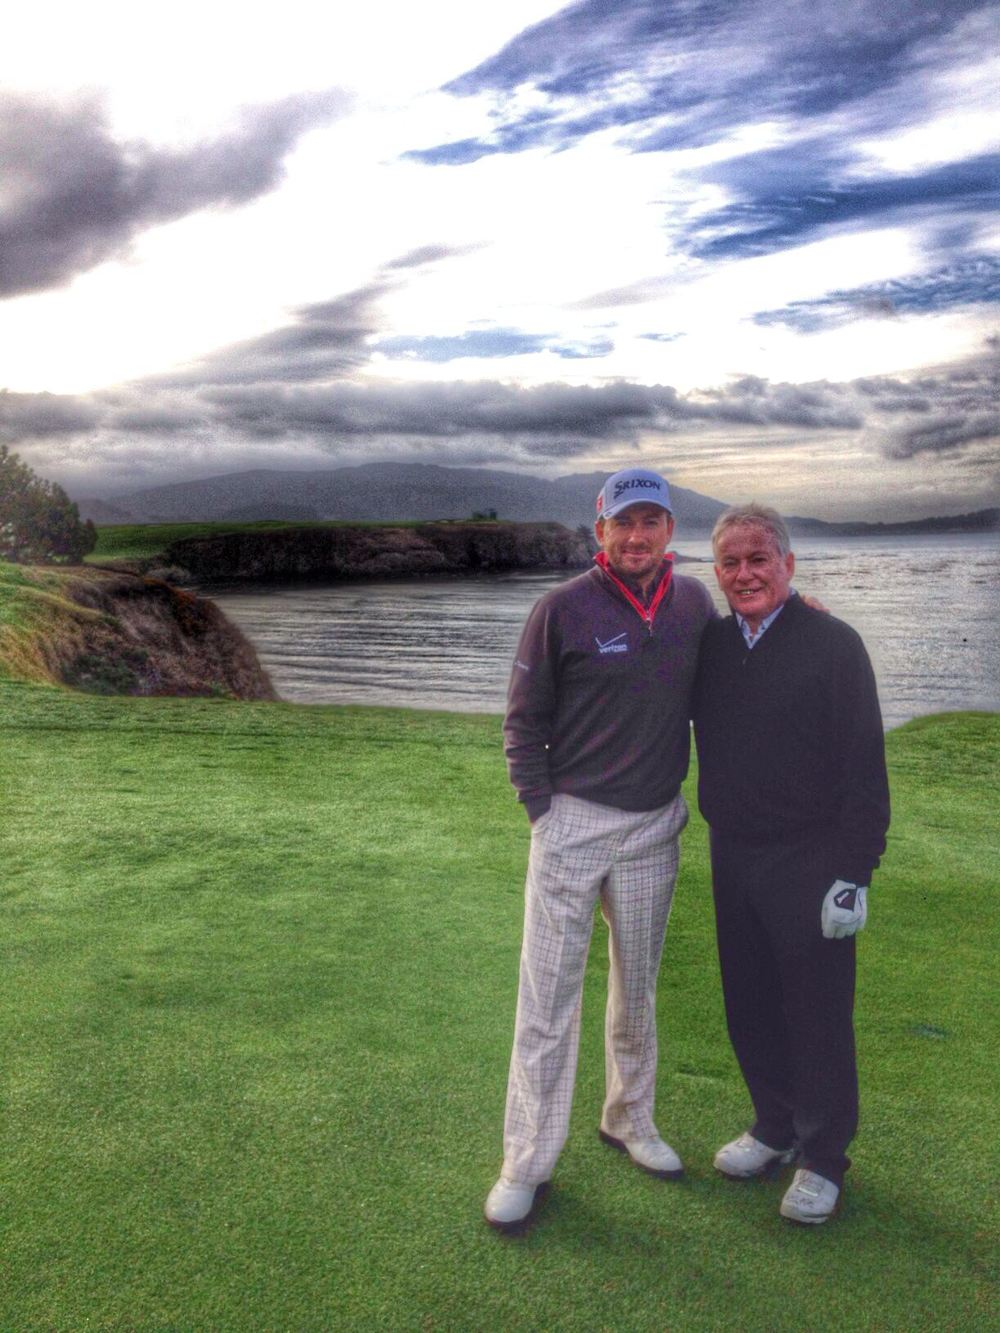 Graeme McDowell and his father Kenny are back at Pebble Beach for the first time since the 2010 US Open. Picture via @Graeme_McDowell